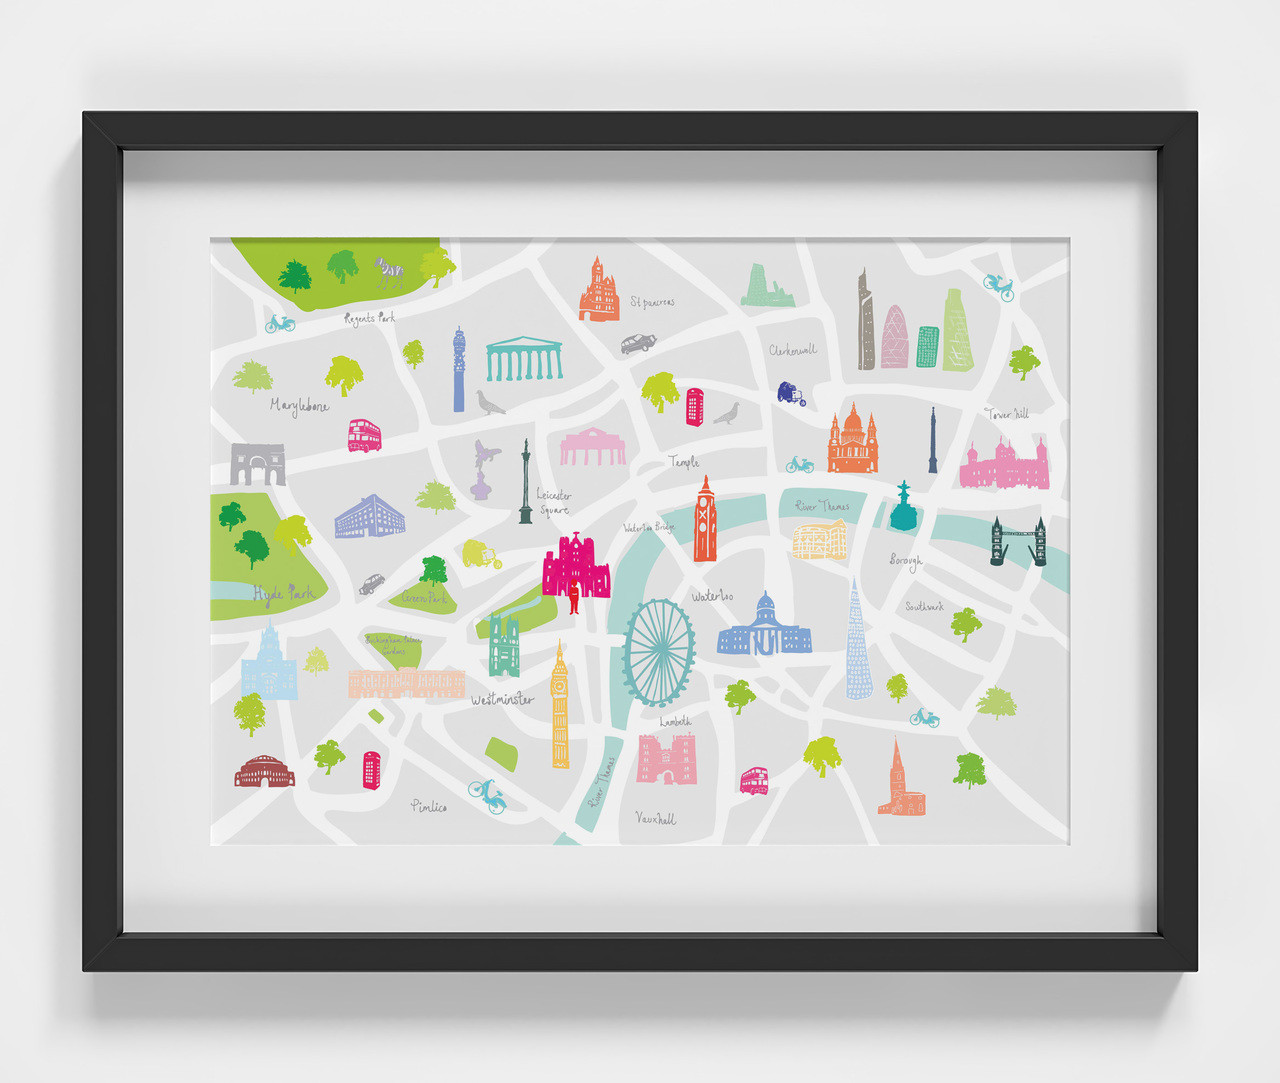 b8985c8ea0f Illustrated hand drawn London map by UK artist Holly Francesca. All prints  can come framed